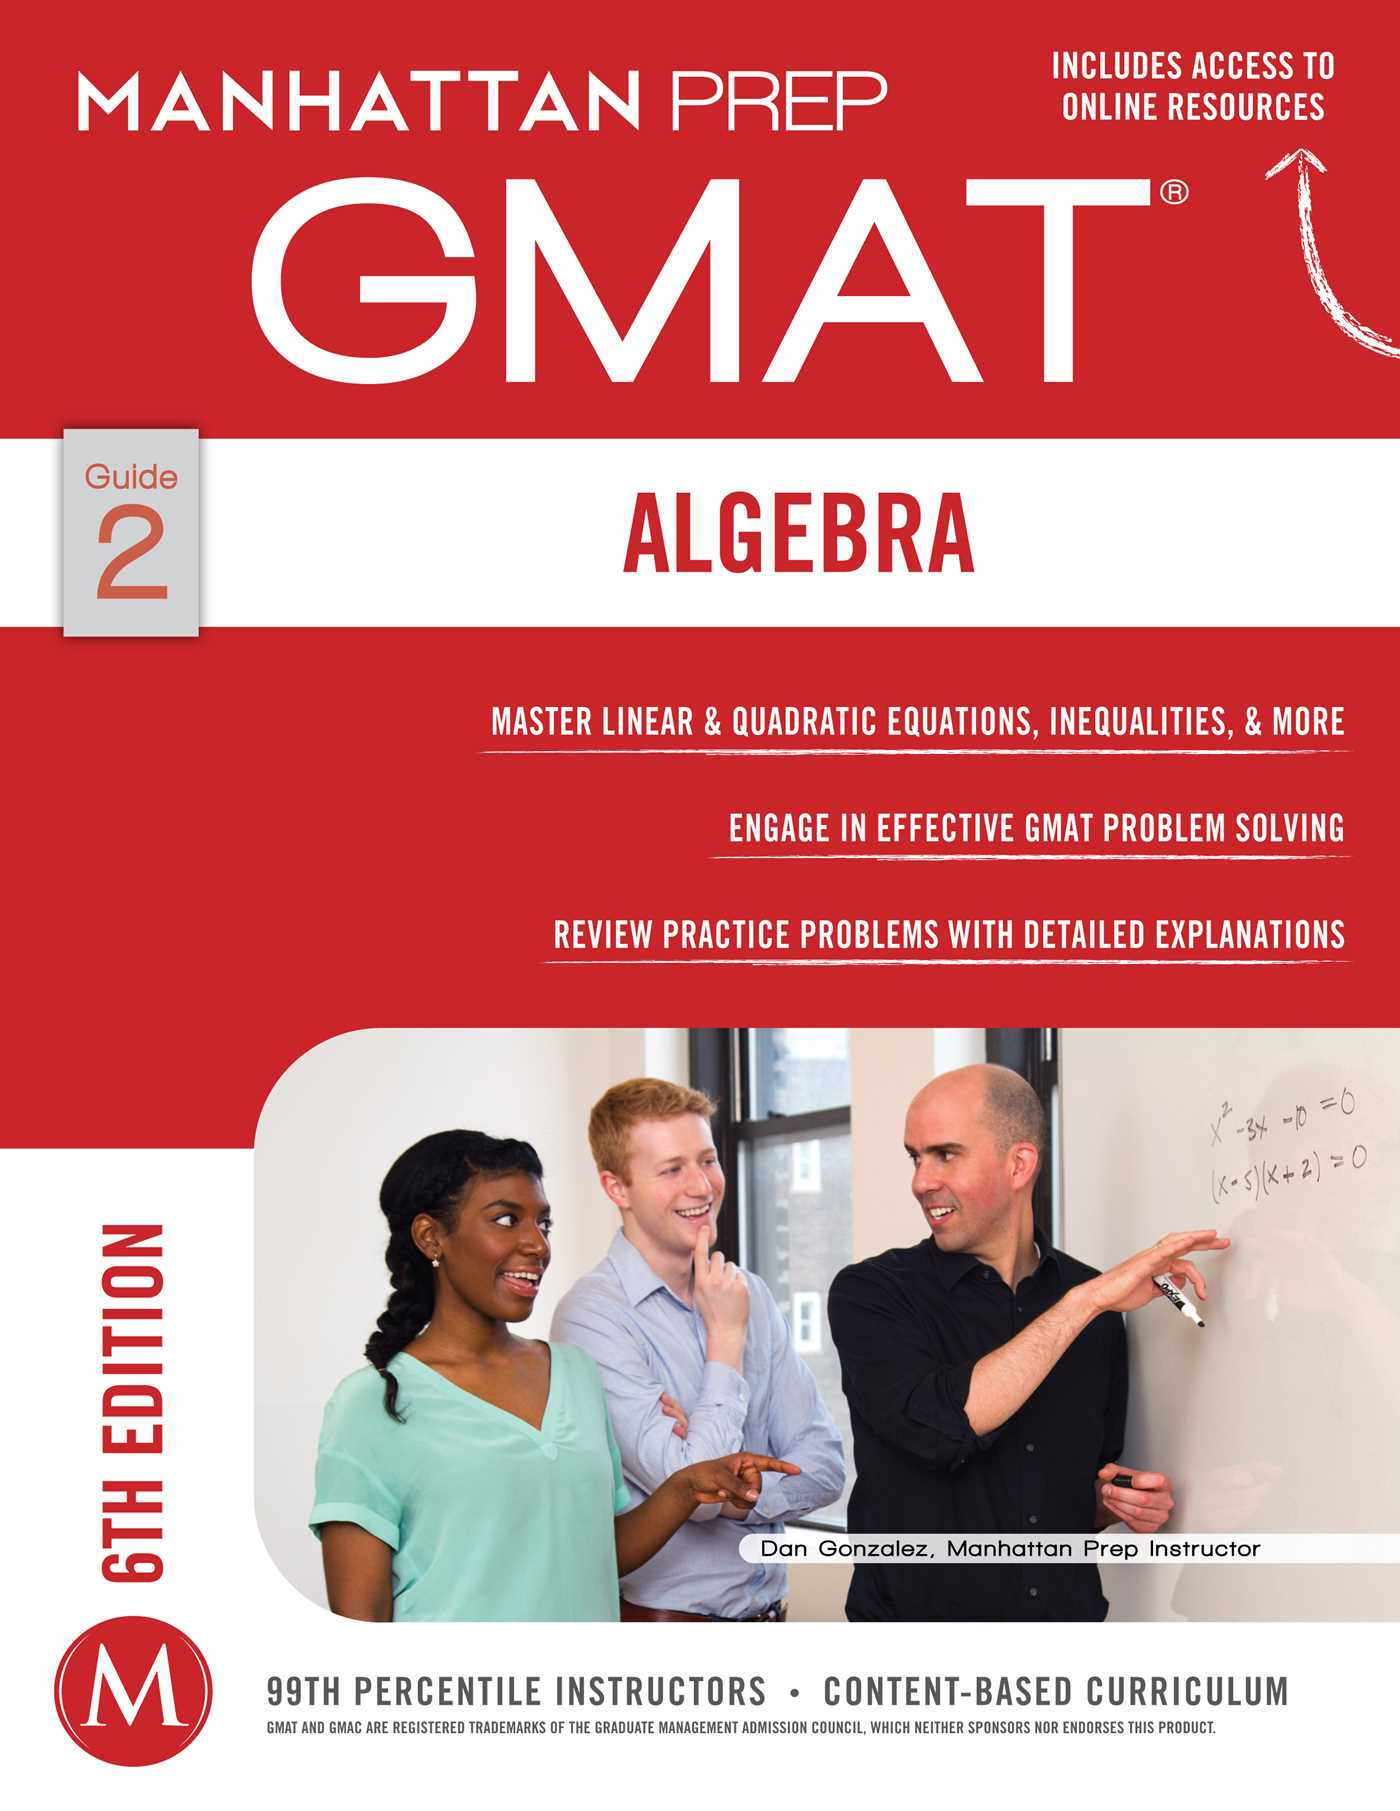 Book Cover Image (jpg): GMAT Algebra Strategy Guide